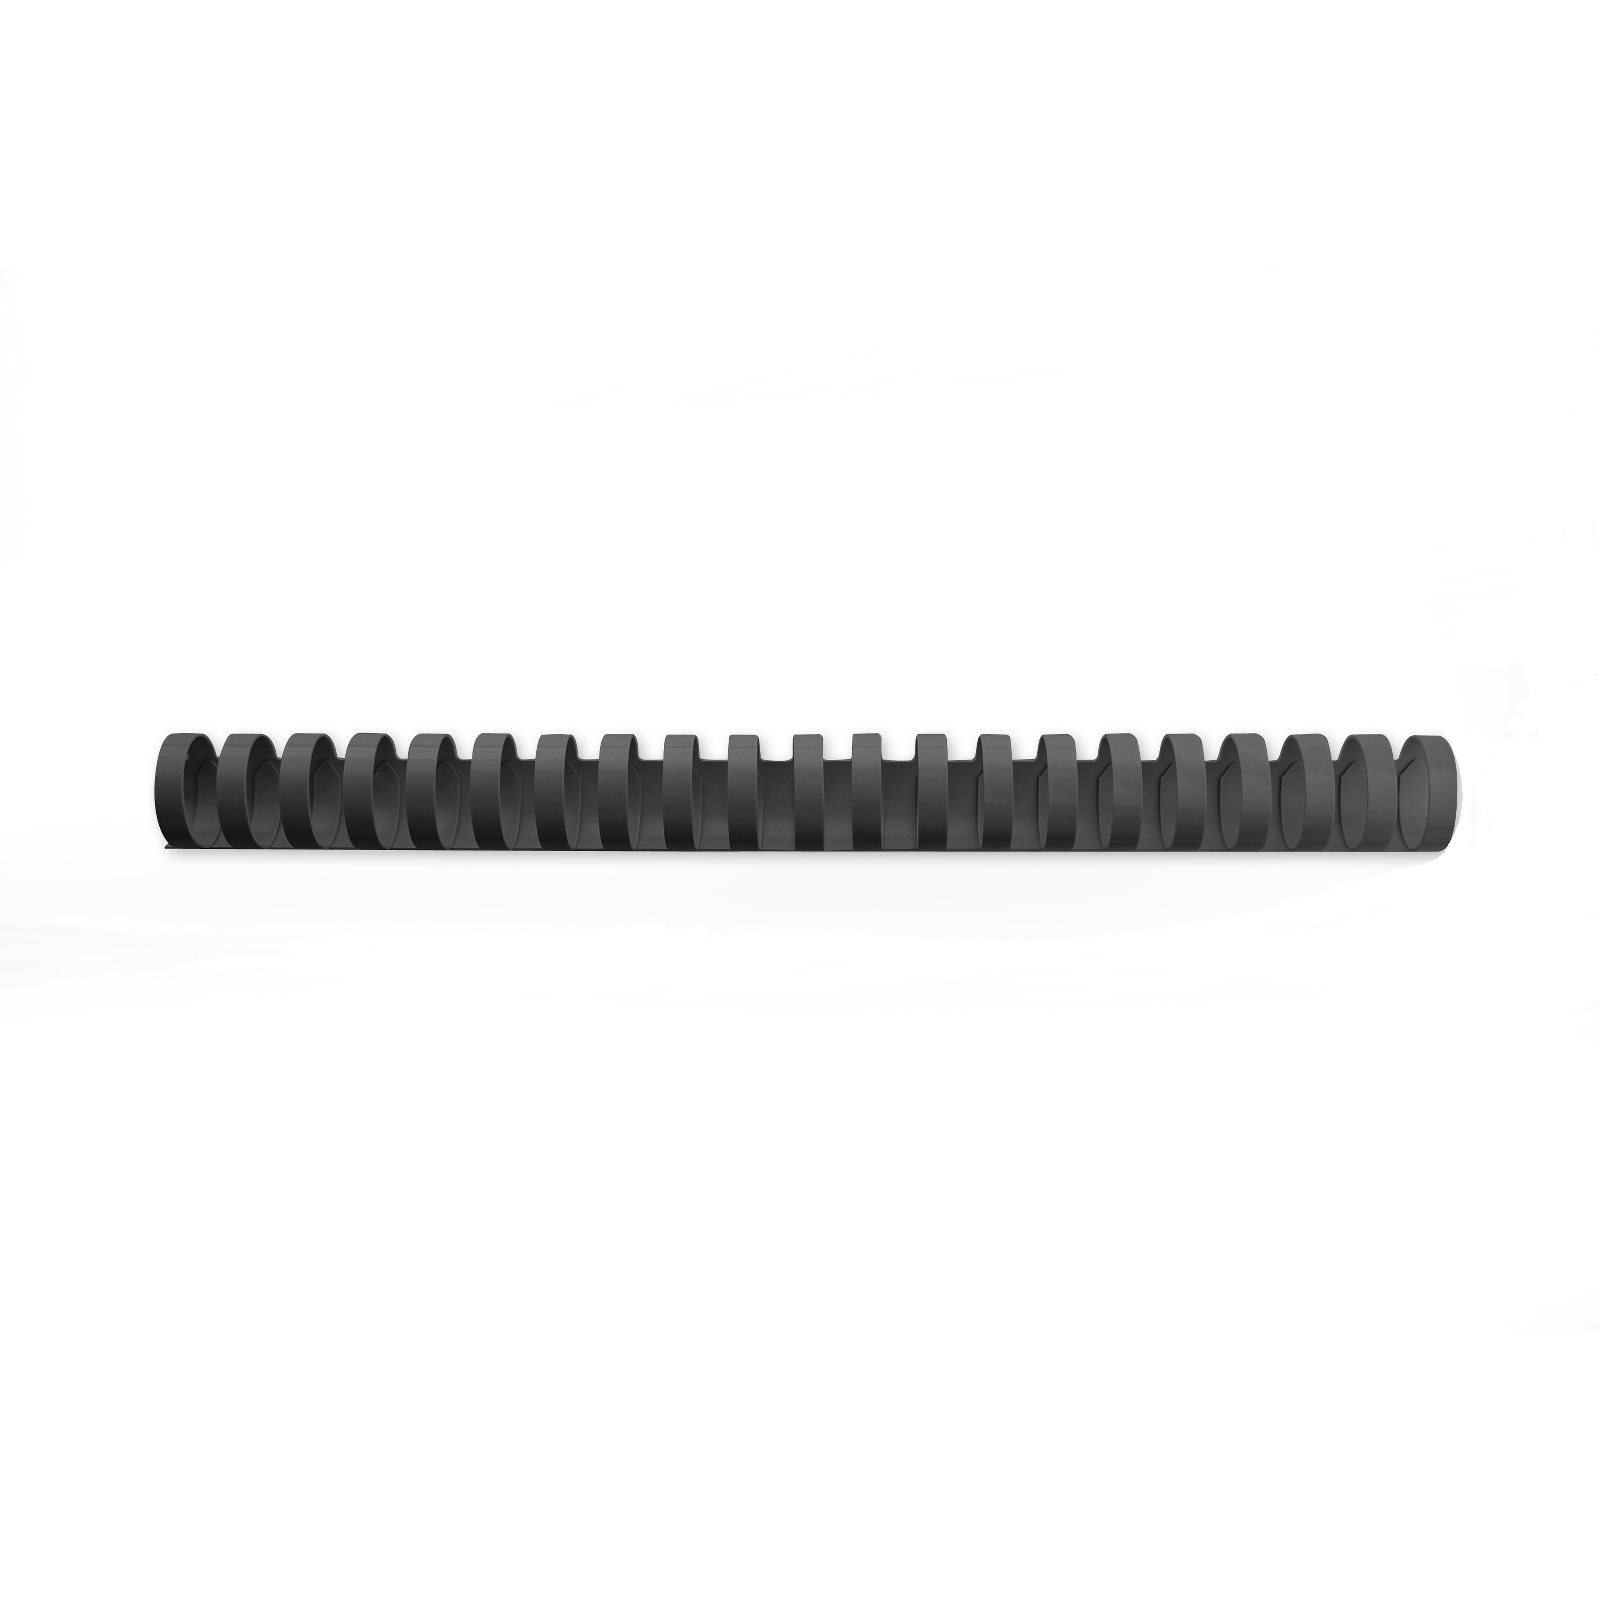 GBC Binding Combs 21 Ring A4 14mm Black 4028178 (PK100)